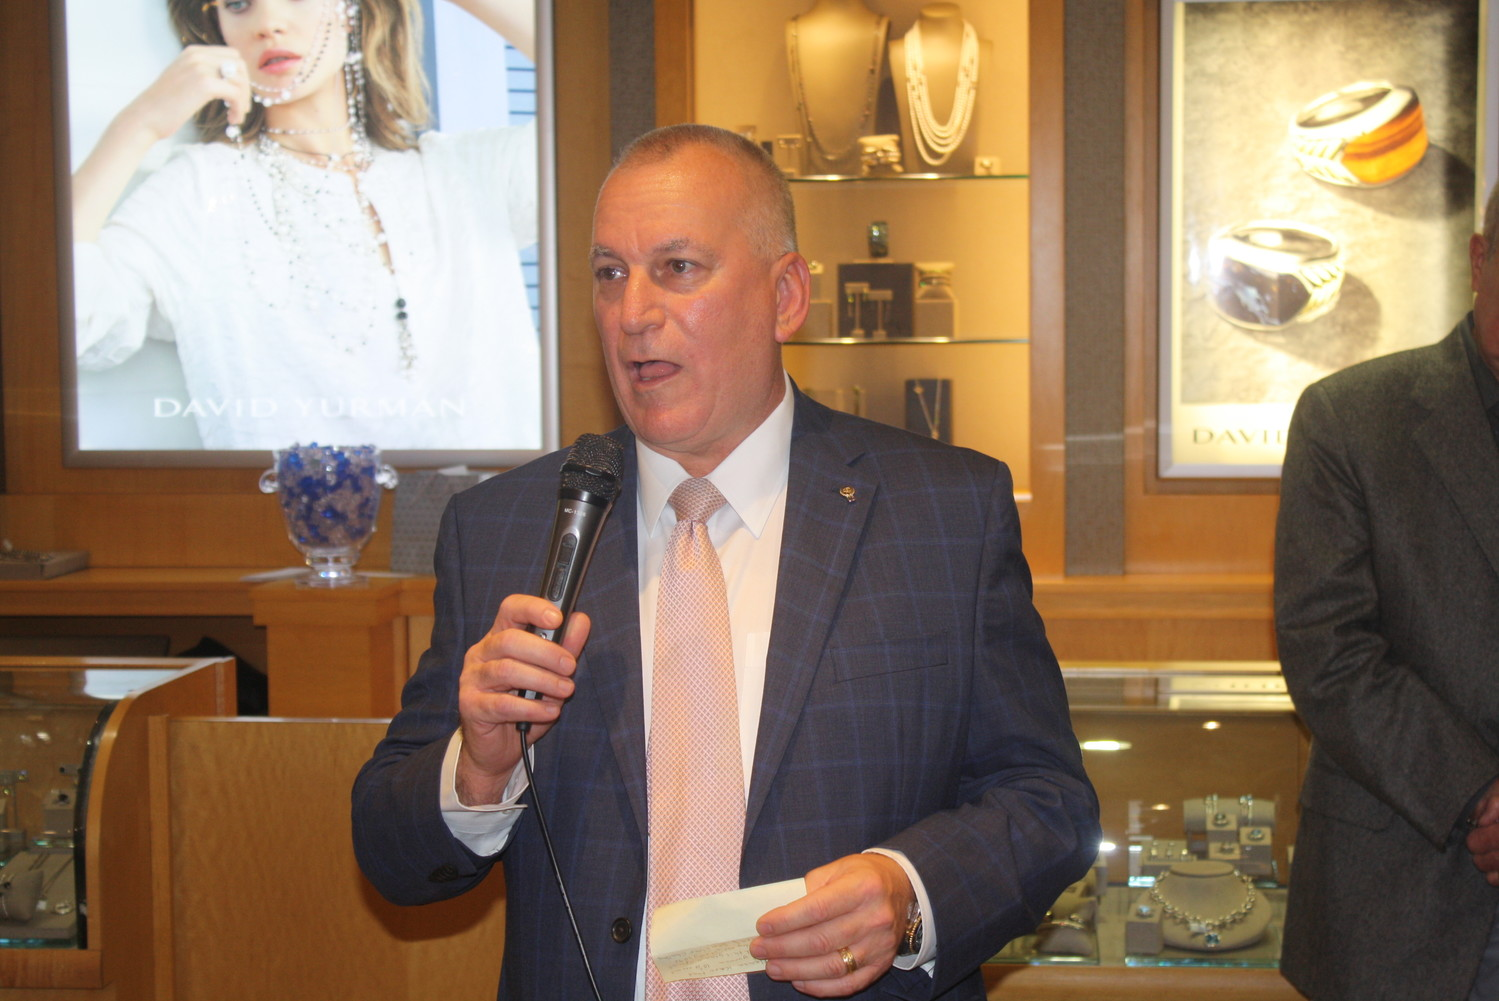 Underwood's Jewelers General Manager John Rutkowski addresses the event attendees.